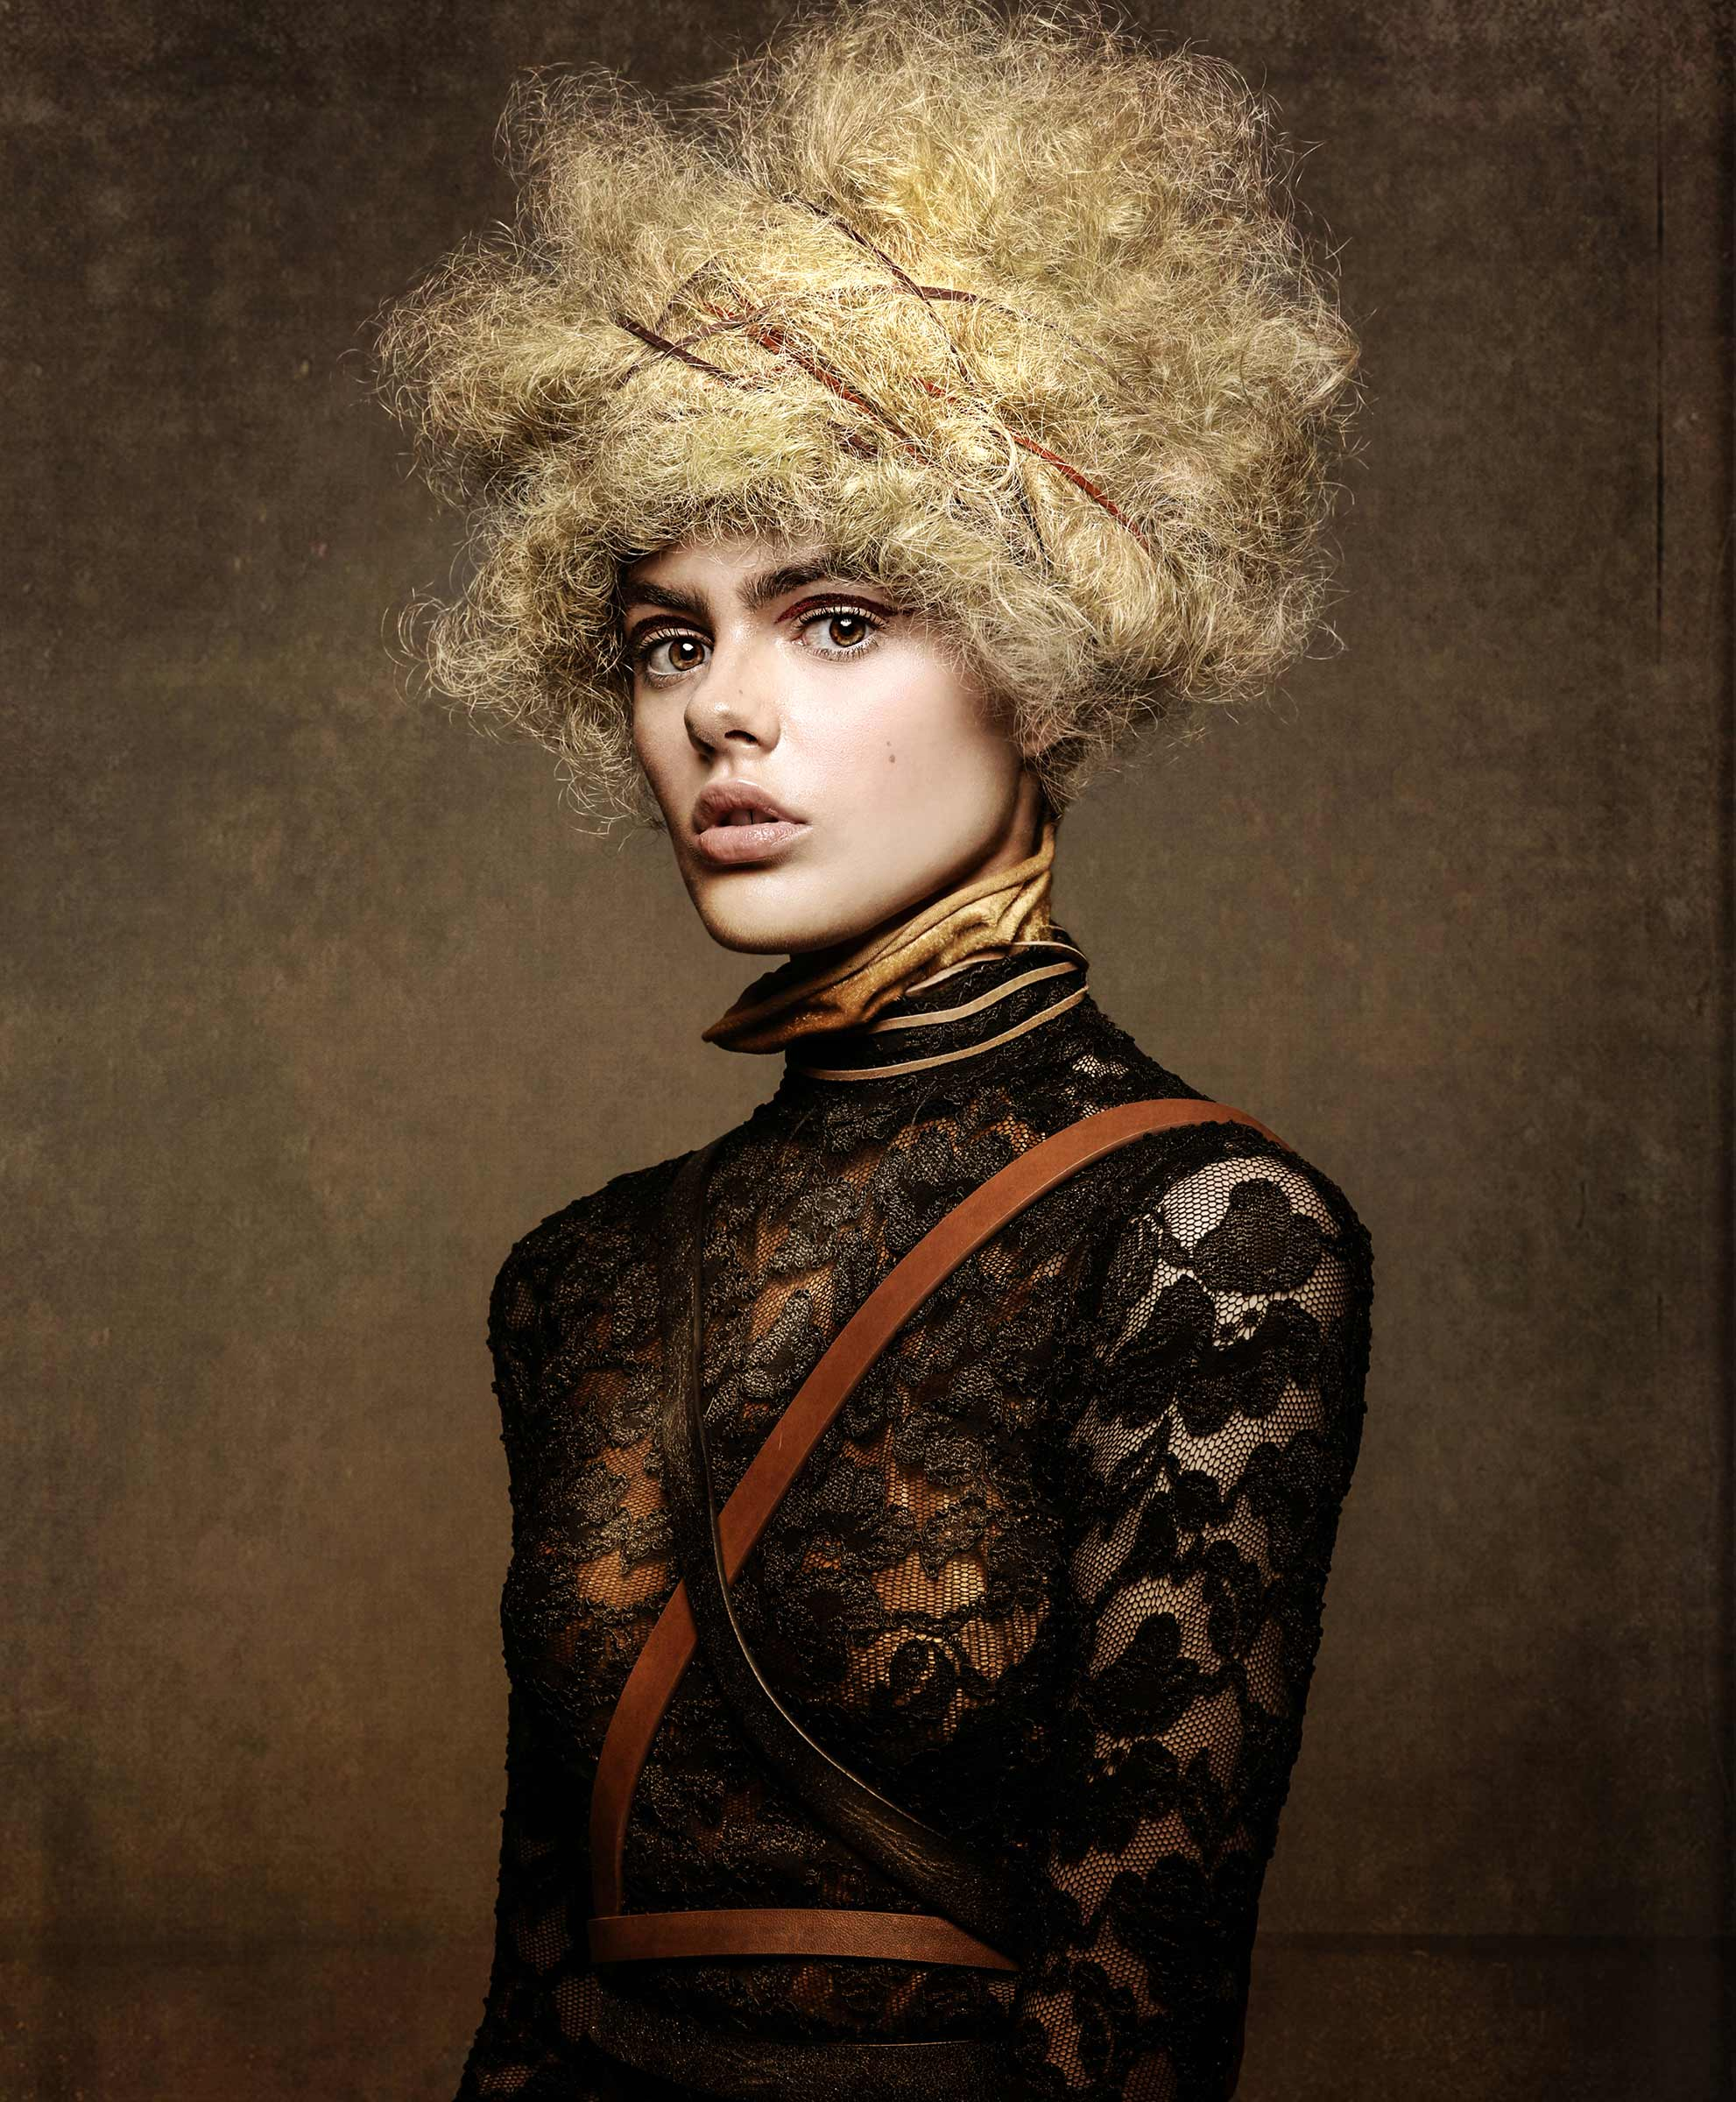 naha-winner-master-stylist-2020-julie-vriesinga-paula-tizzard-hair-collection